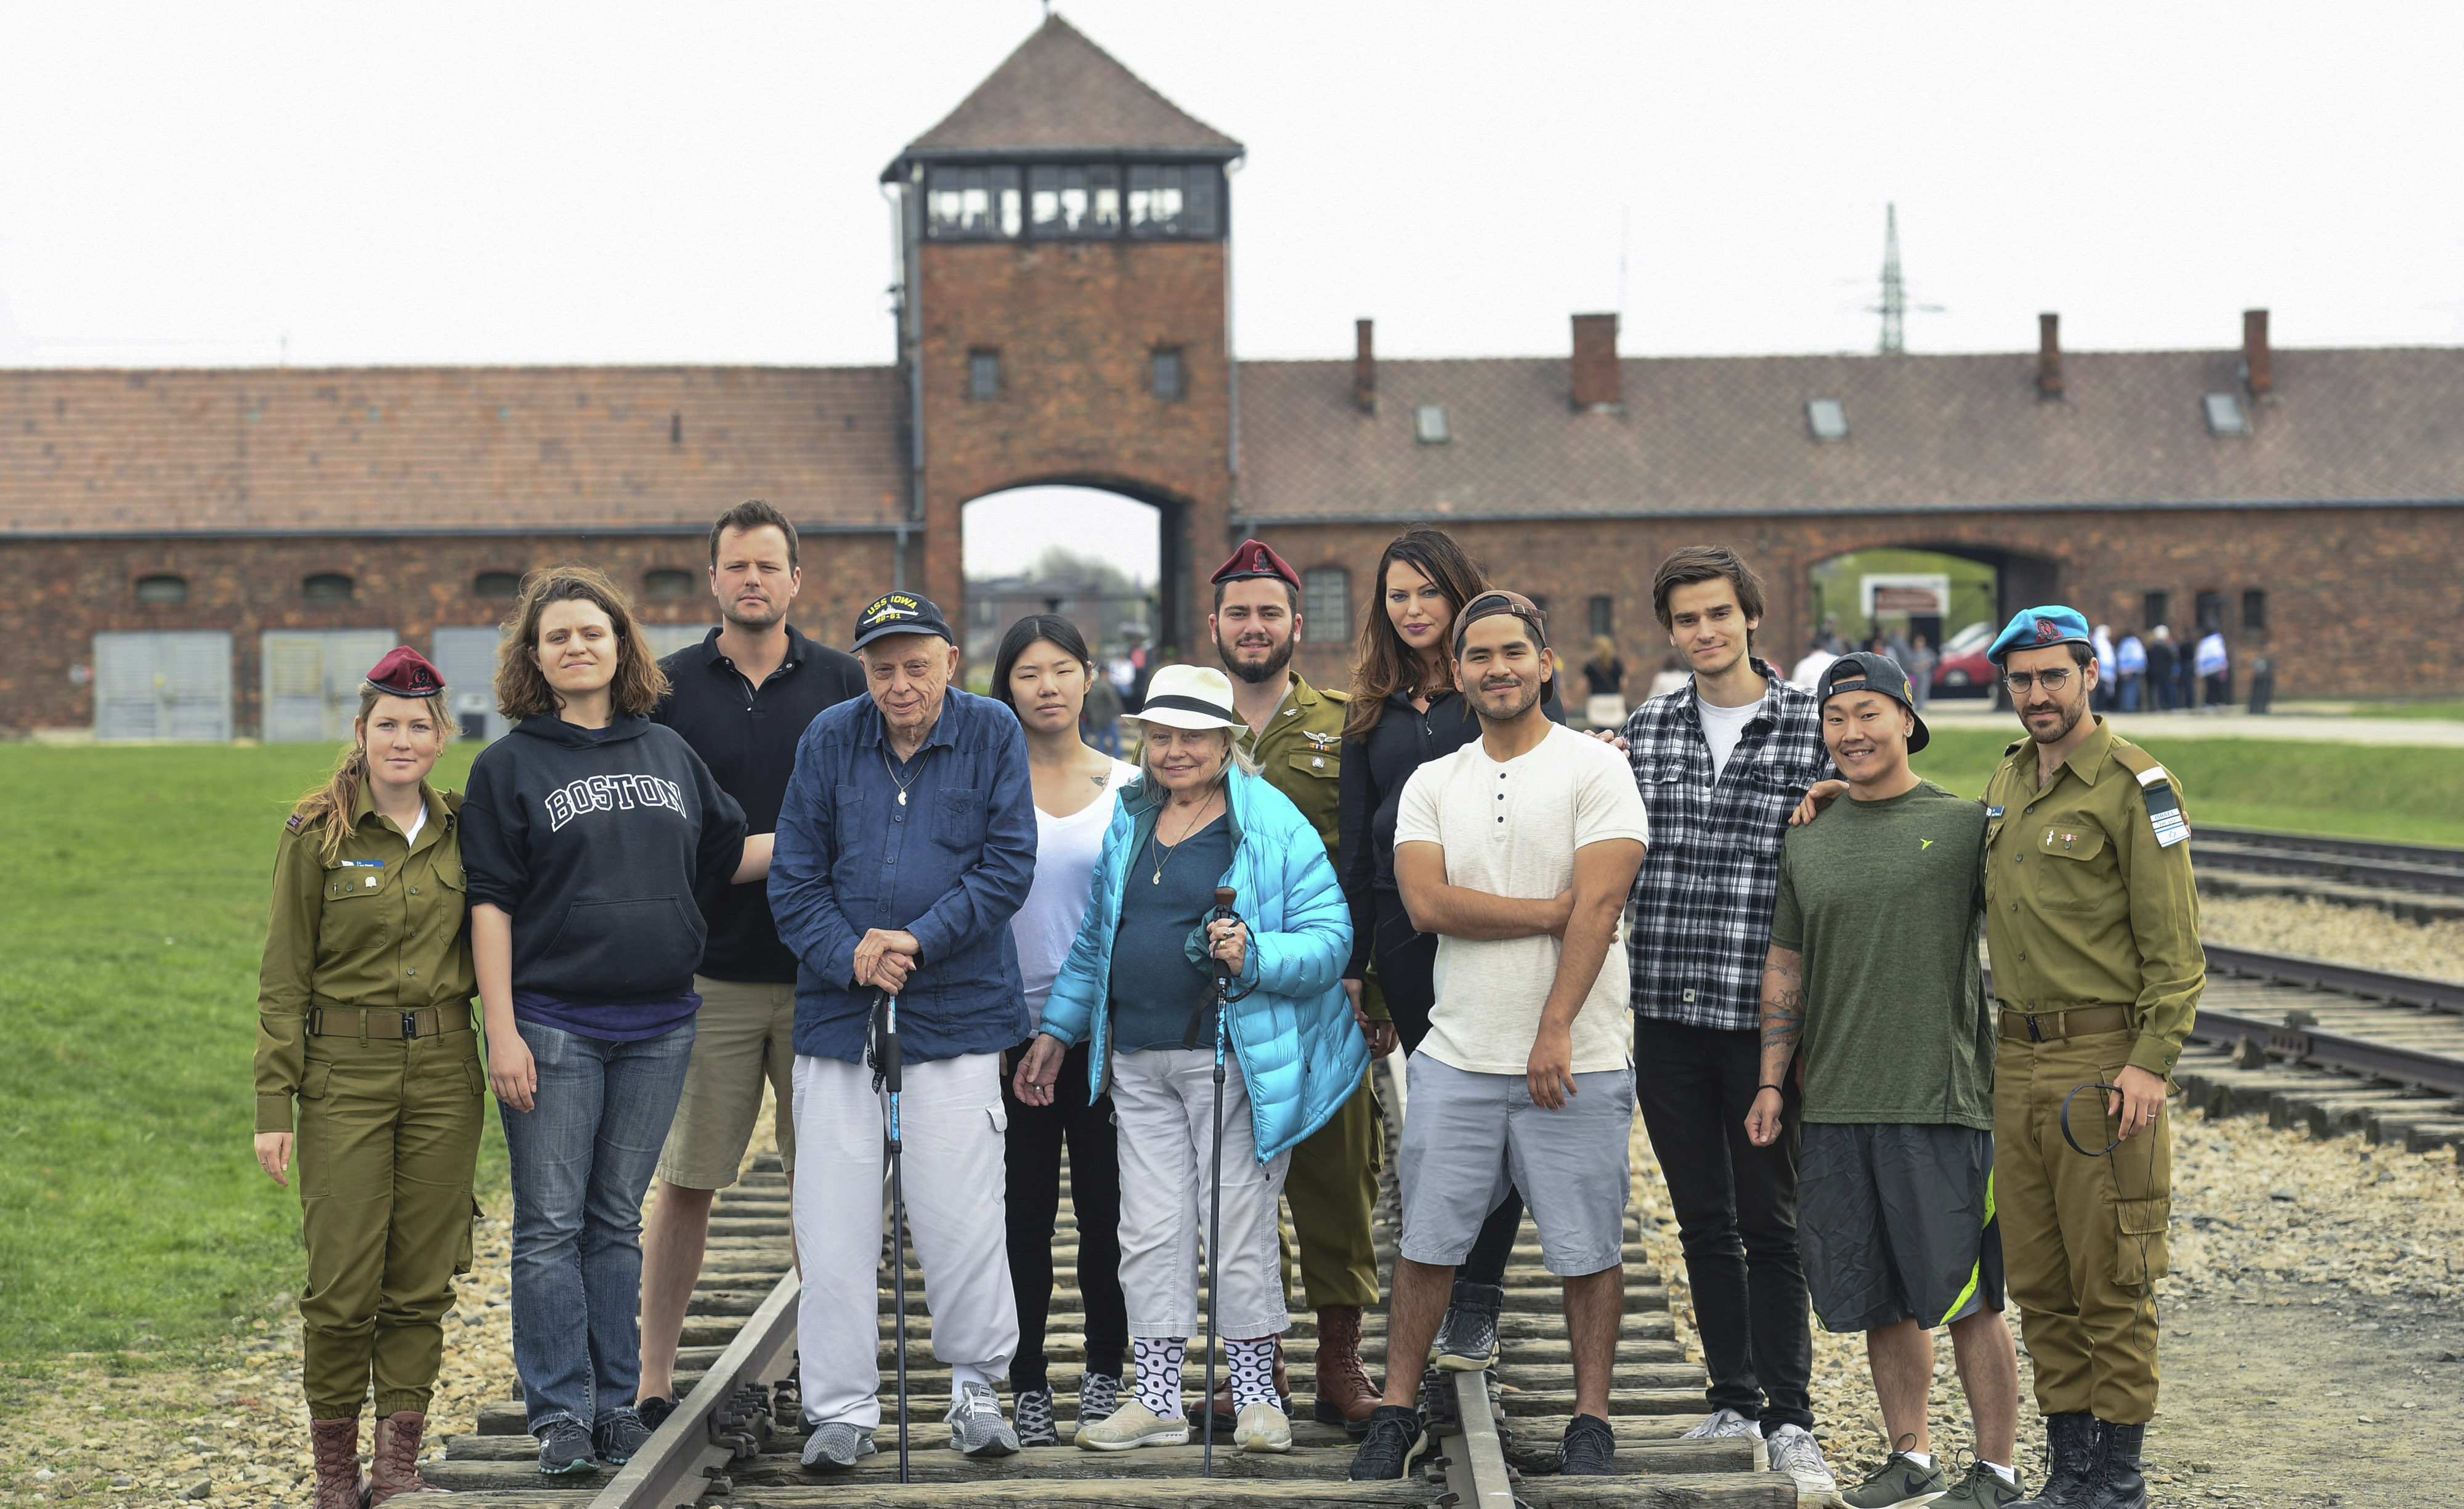 The Calvin family with IDF soldiers on the tracks leading to Auschwitz-Birkenau on April 15 (Photo/Shahar Azran)